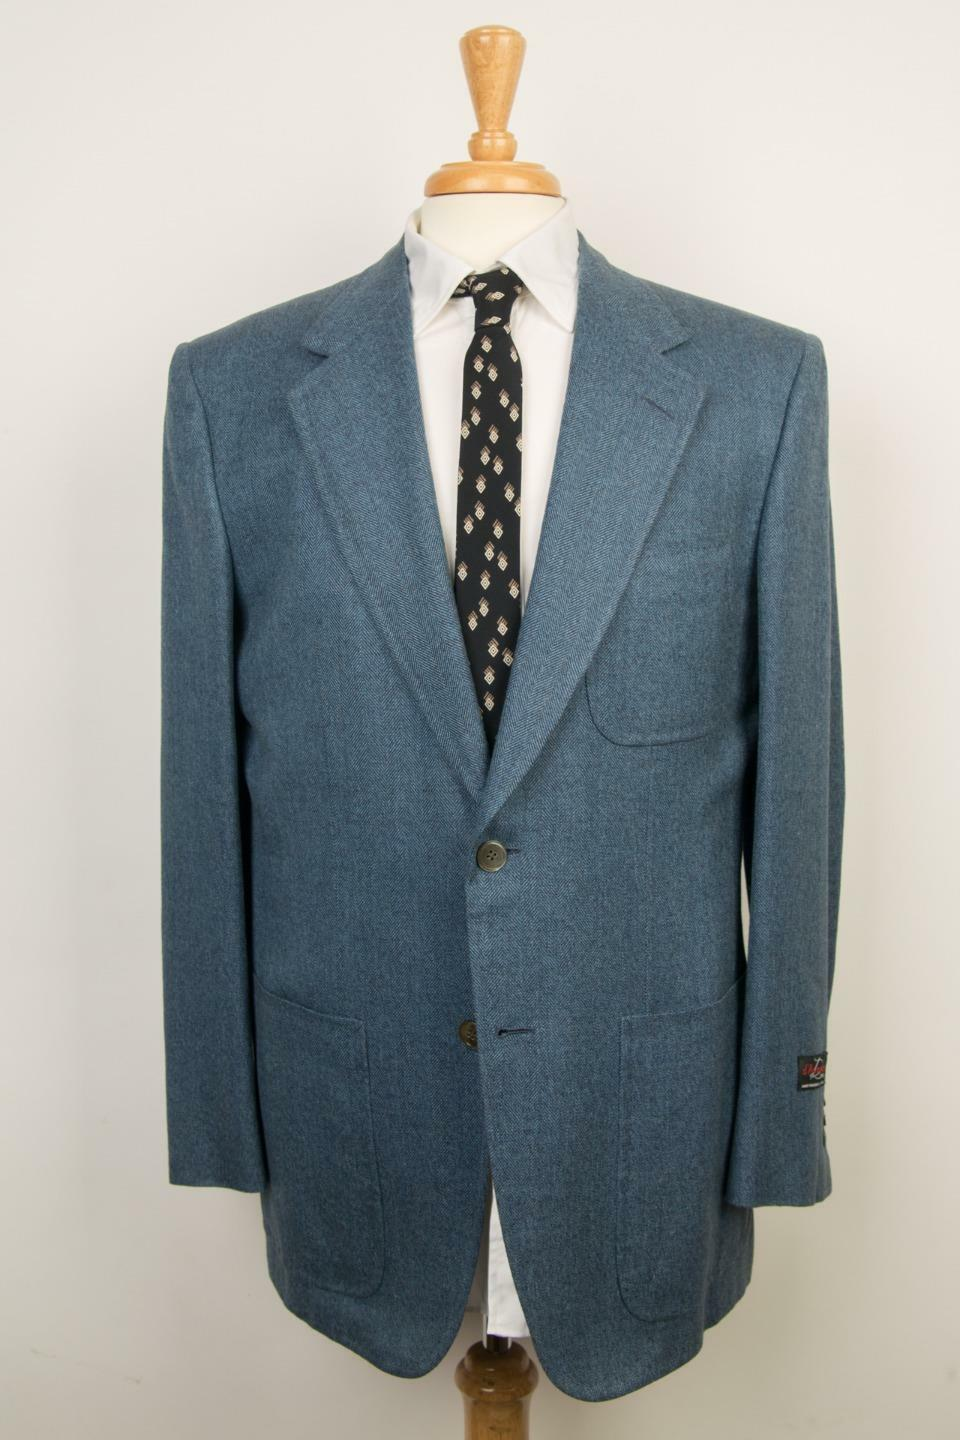 D'Avenza NWT bluee Herringbone Striped 2 Button Silk Blend Sport Coat 50 IT 40 US